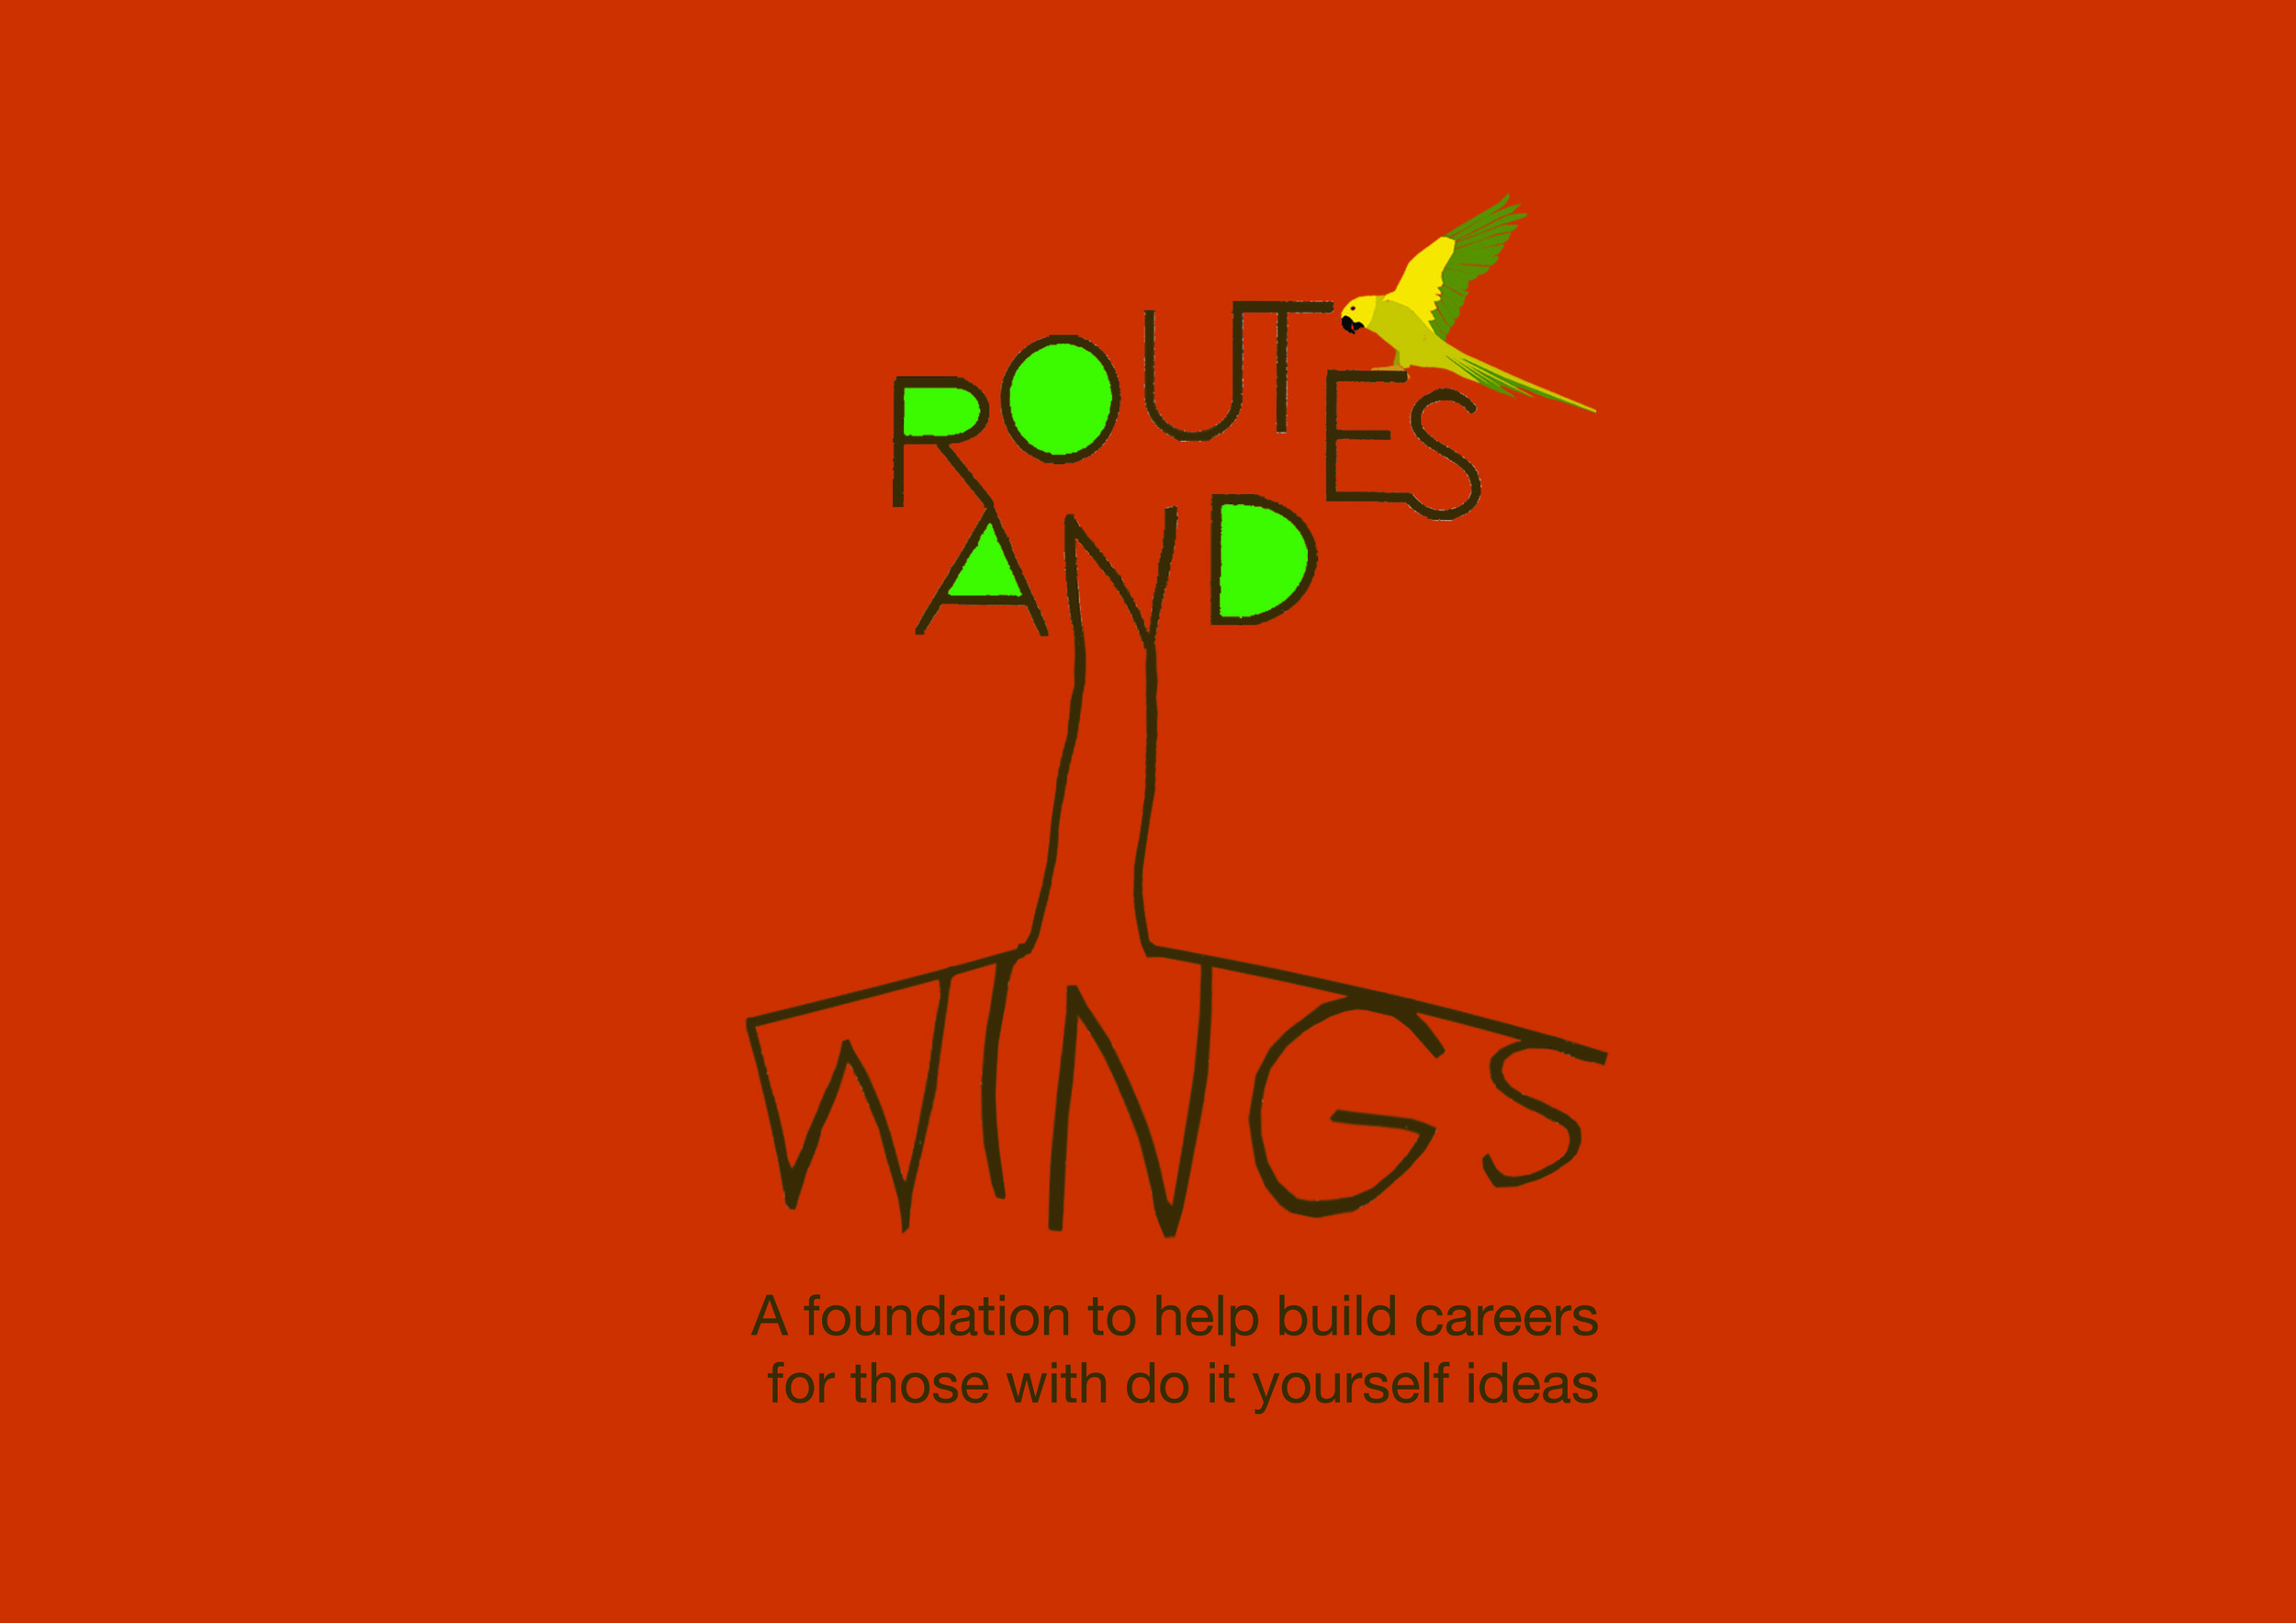 routes and wings logo.jpg